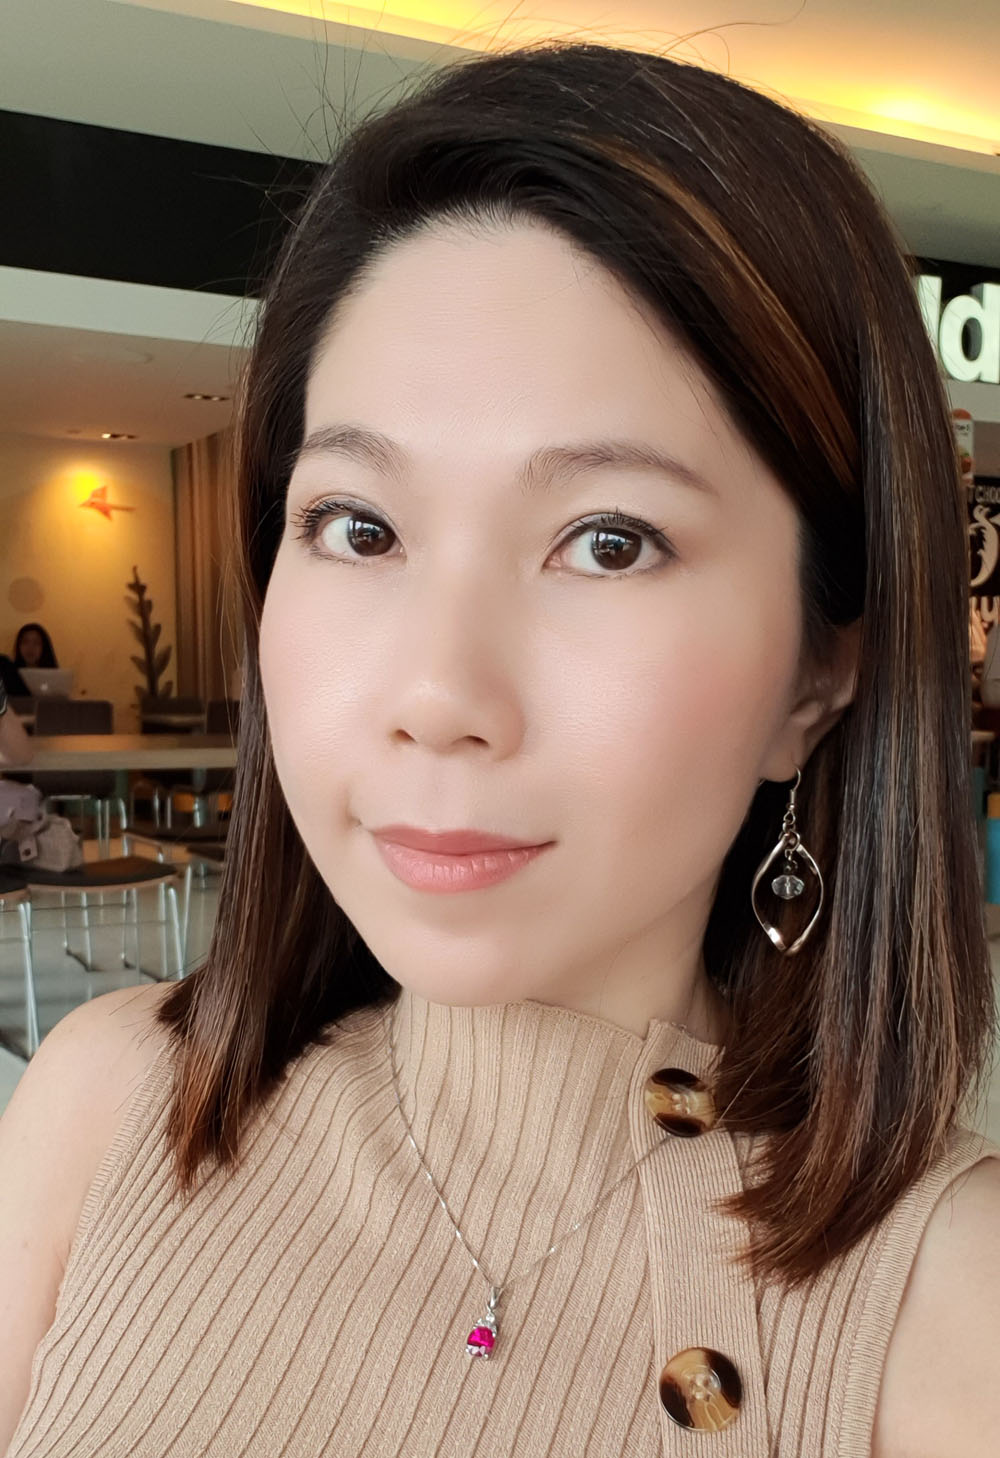 Before Ultherapy treatment in Singapore